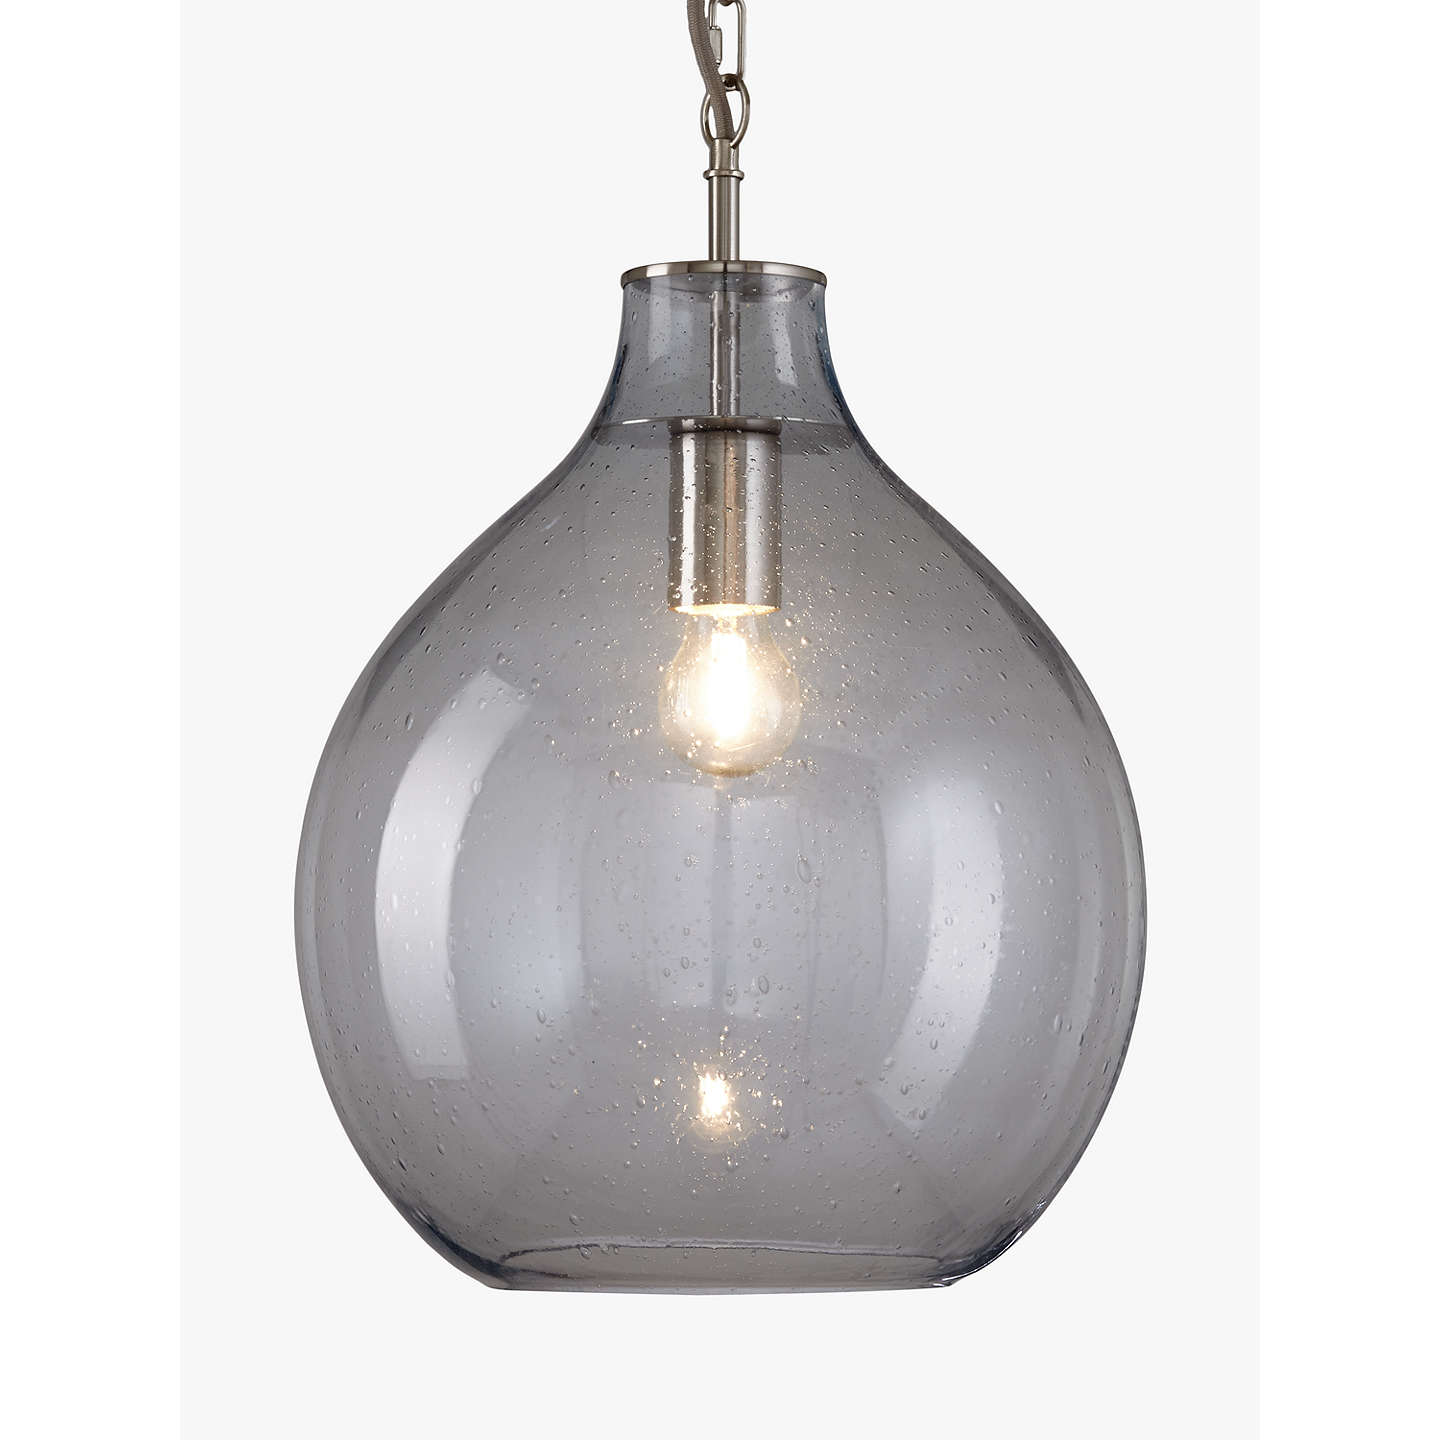 blog pendant tech necessities an efficient soco bulb light lighting ylighting incandescent from lightbulb design yes